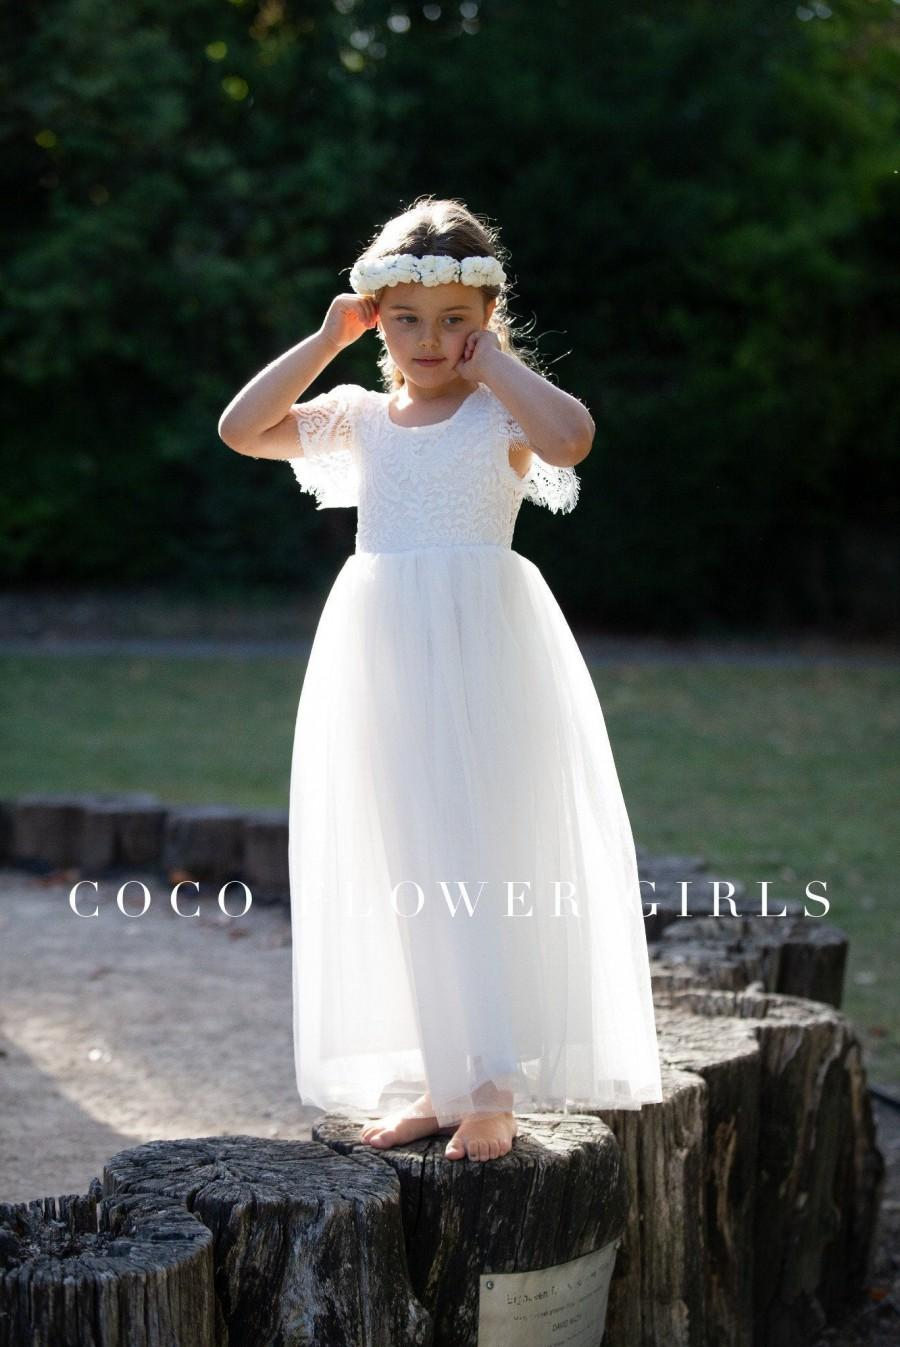 Hochzeit - Very Pretty Long White Layered Tulle Lace Flutter Sleeve Flower Girl Dress - Ice White - Bohemian Hippy Beach Rustic Wedding Style